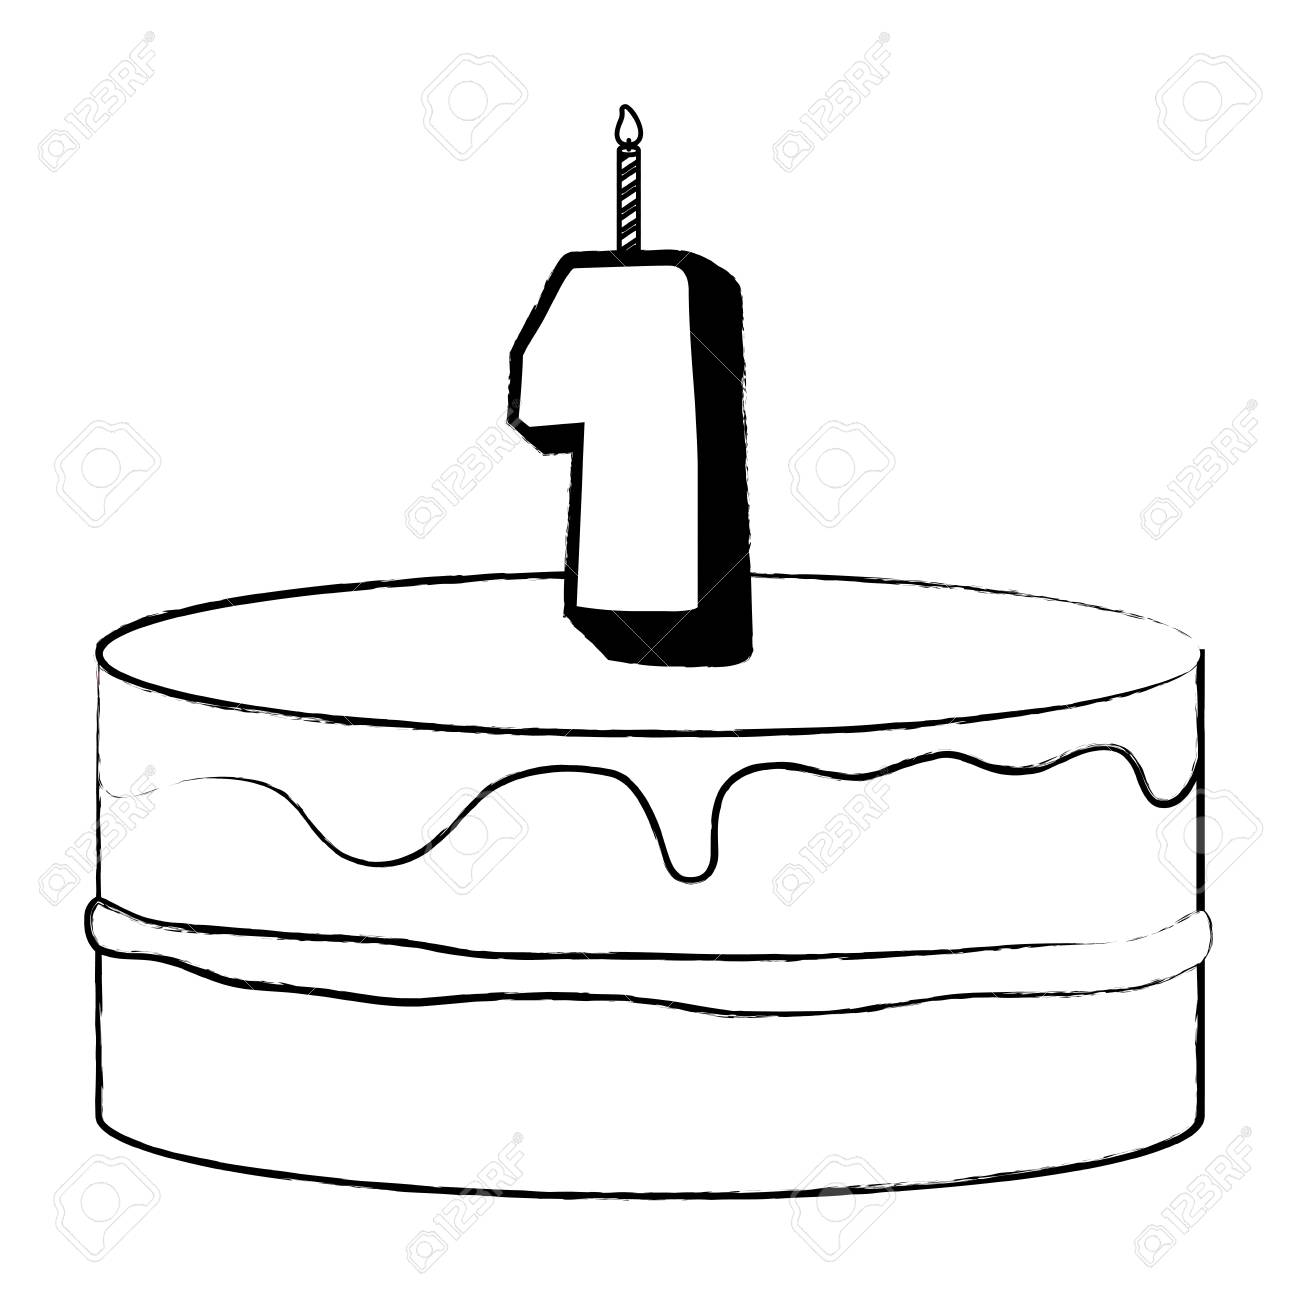 Birthday Candle With Number One Vector Illustration Design Royalty Free  Cliparts, Vectors, And Stock Illustration. Image 99730130.